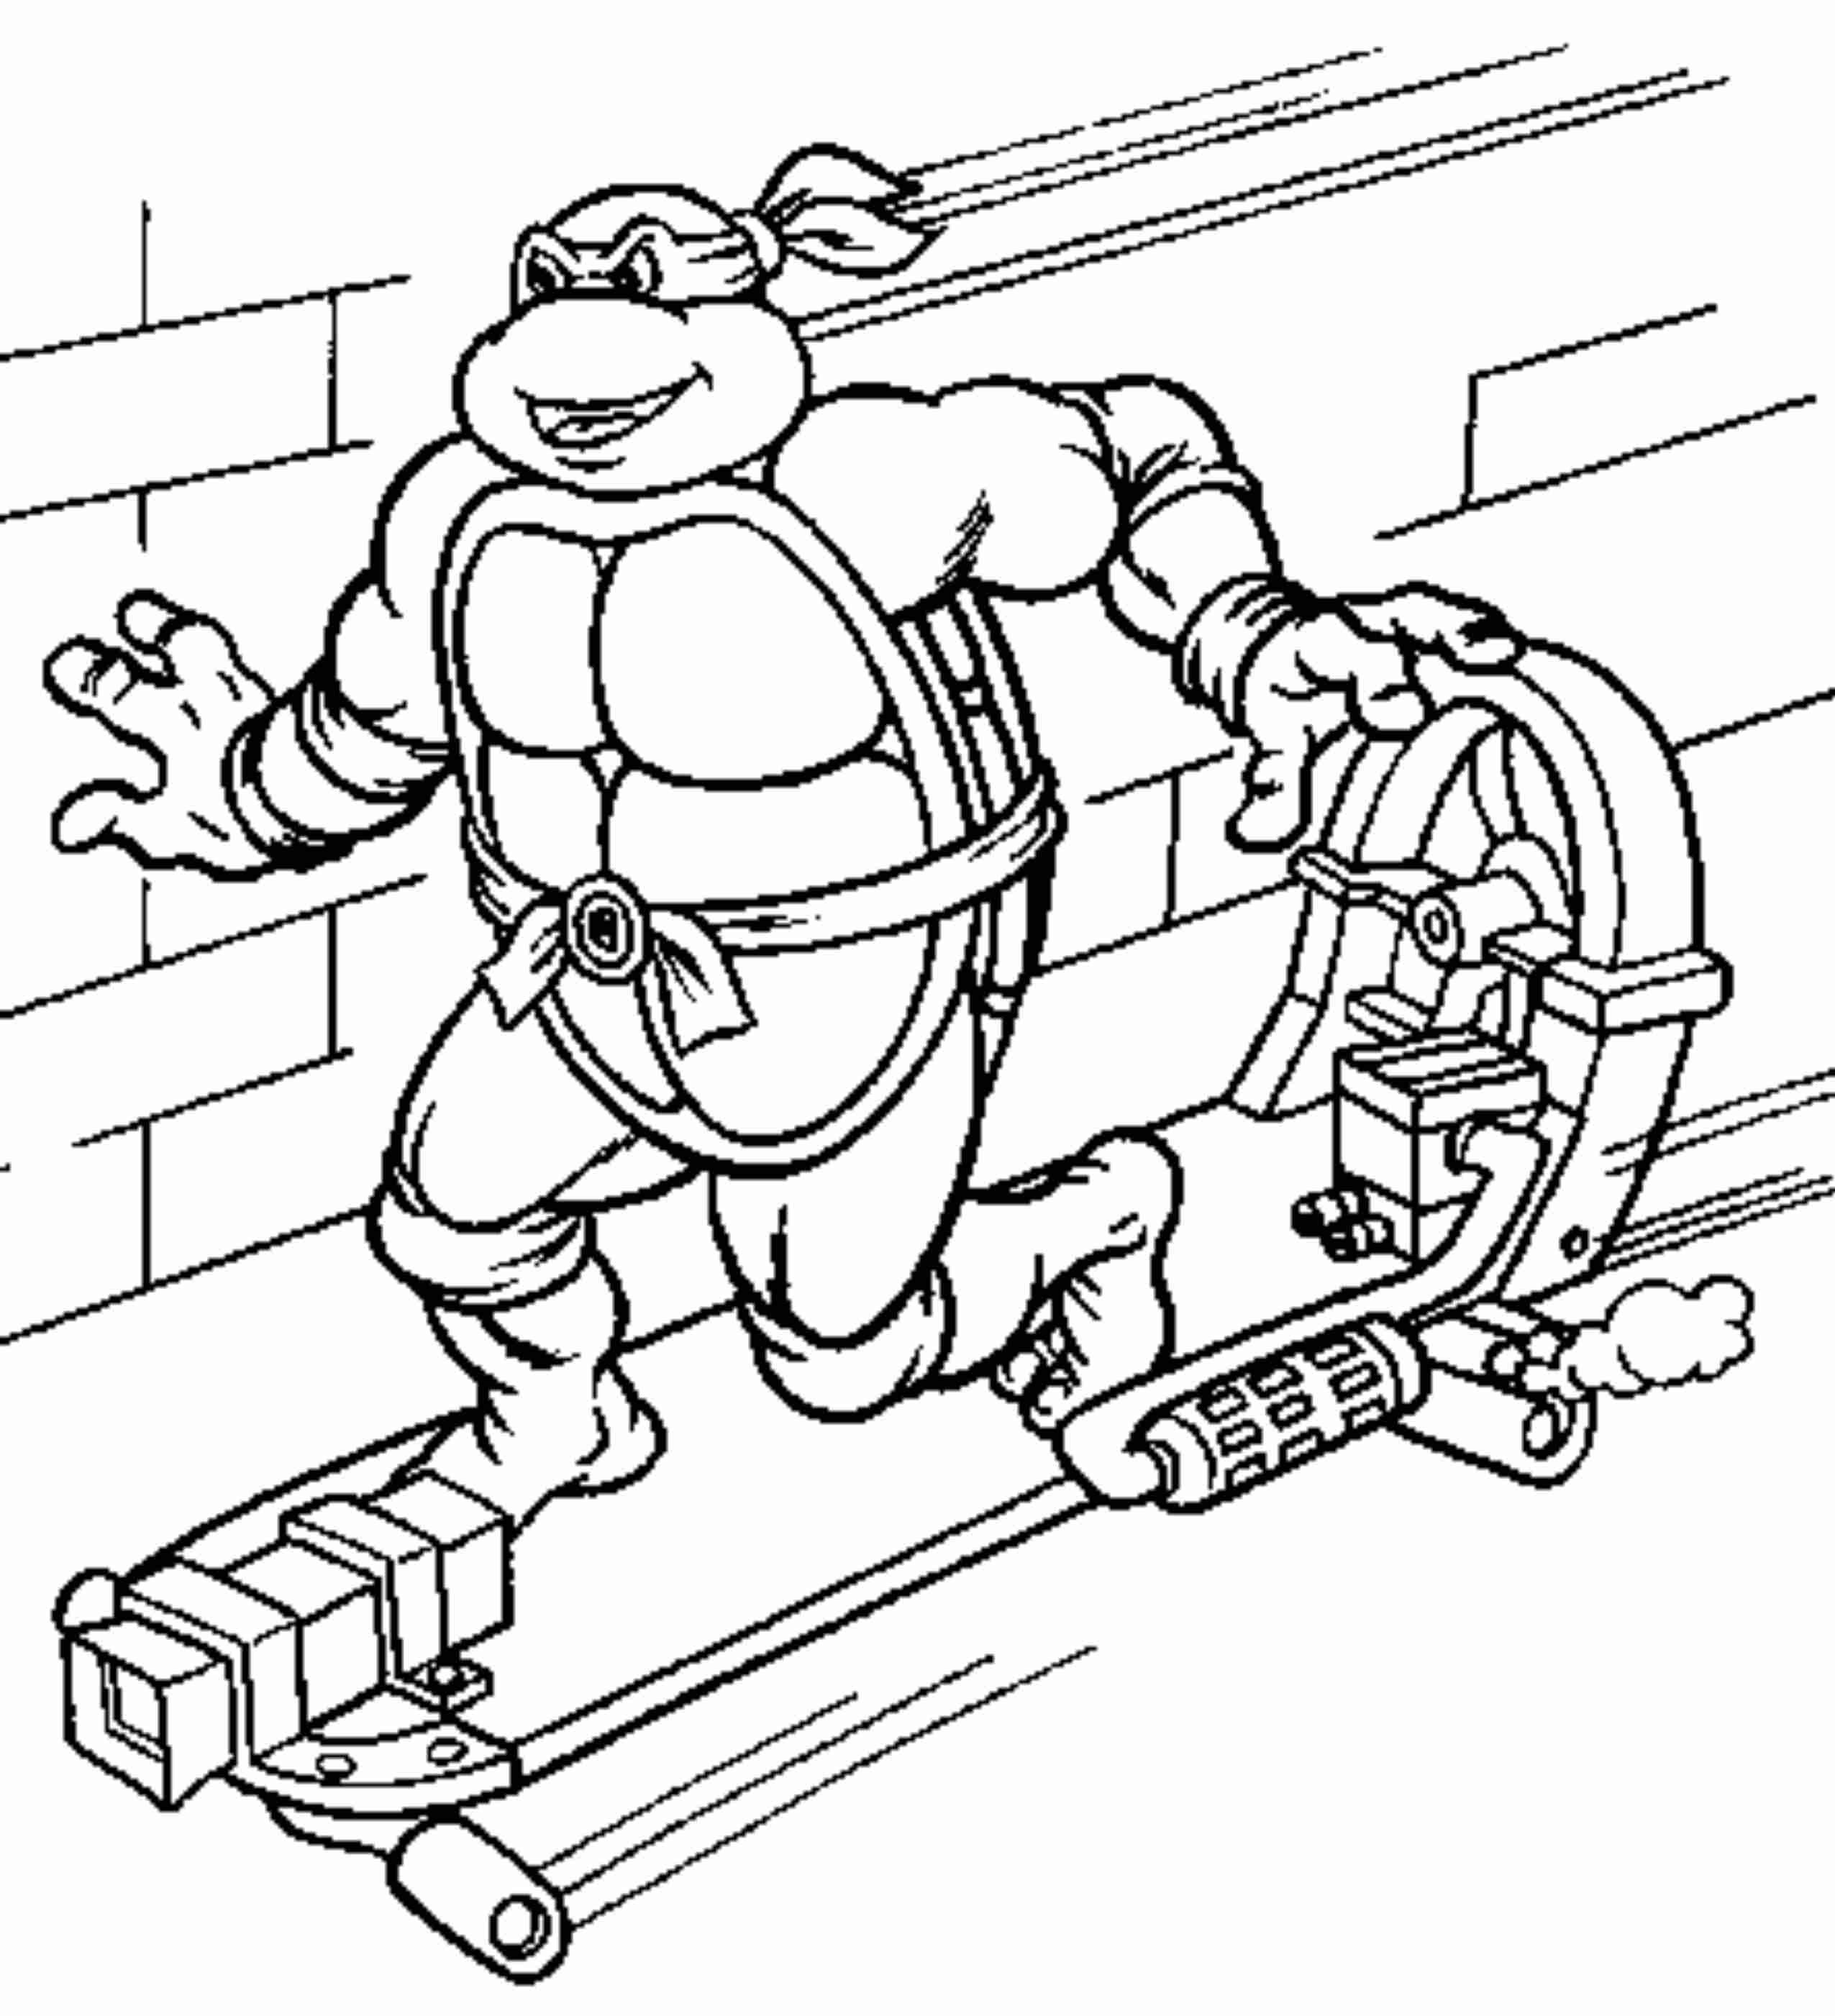 The Attractive Ninja Coloring Pages For Kids Activity Best Apps For Kids